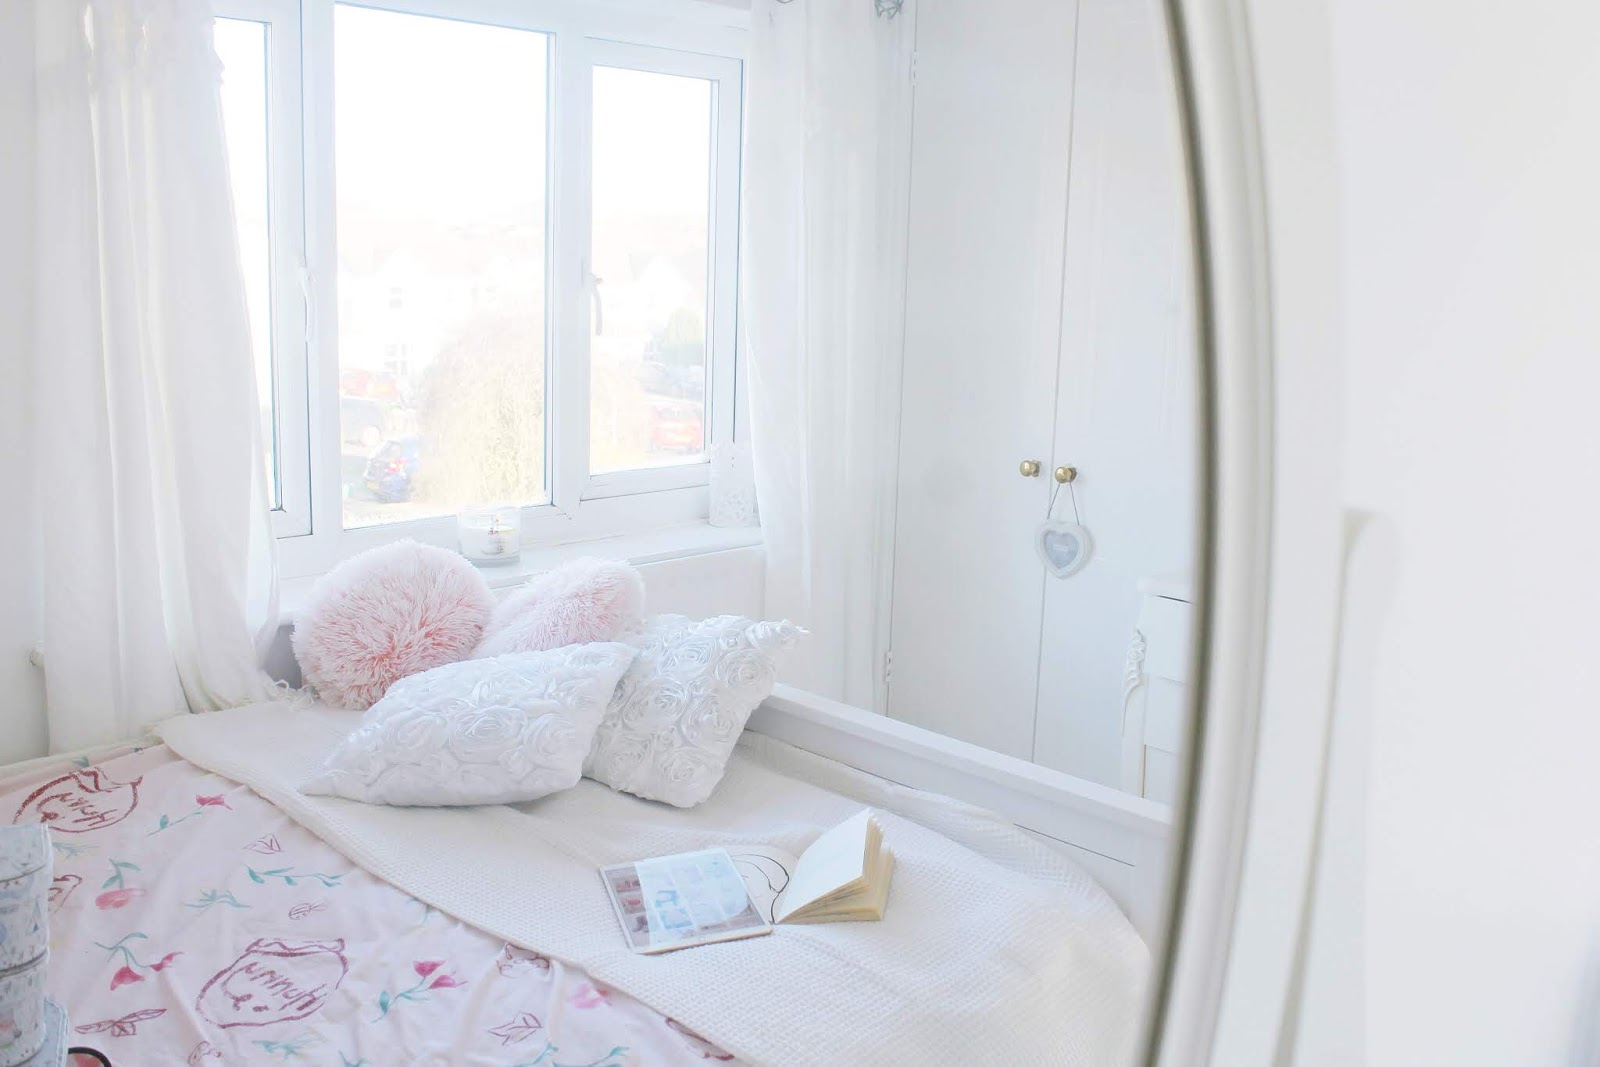 Modern princess room and home ideas for a girly apartment, girly bedroom or even dorm room